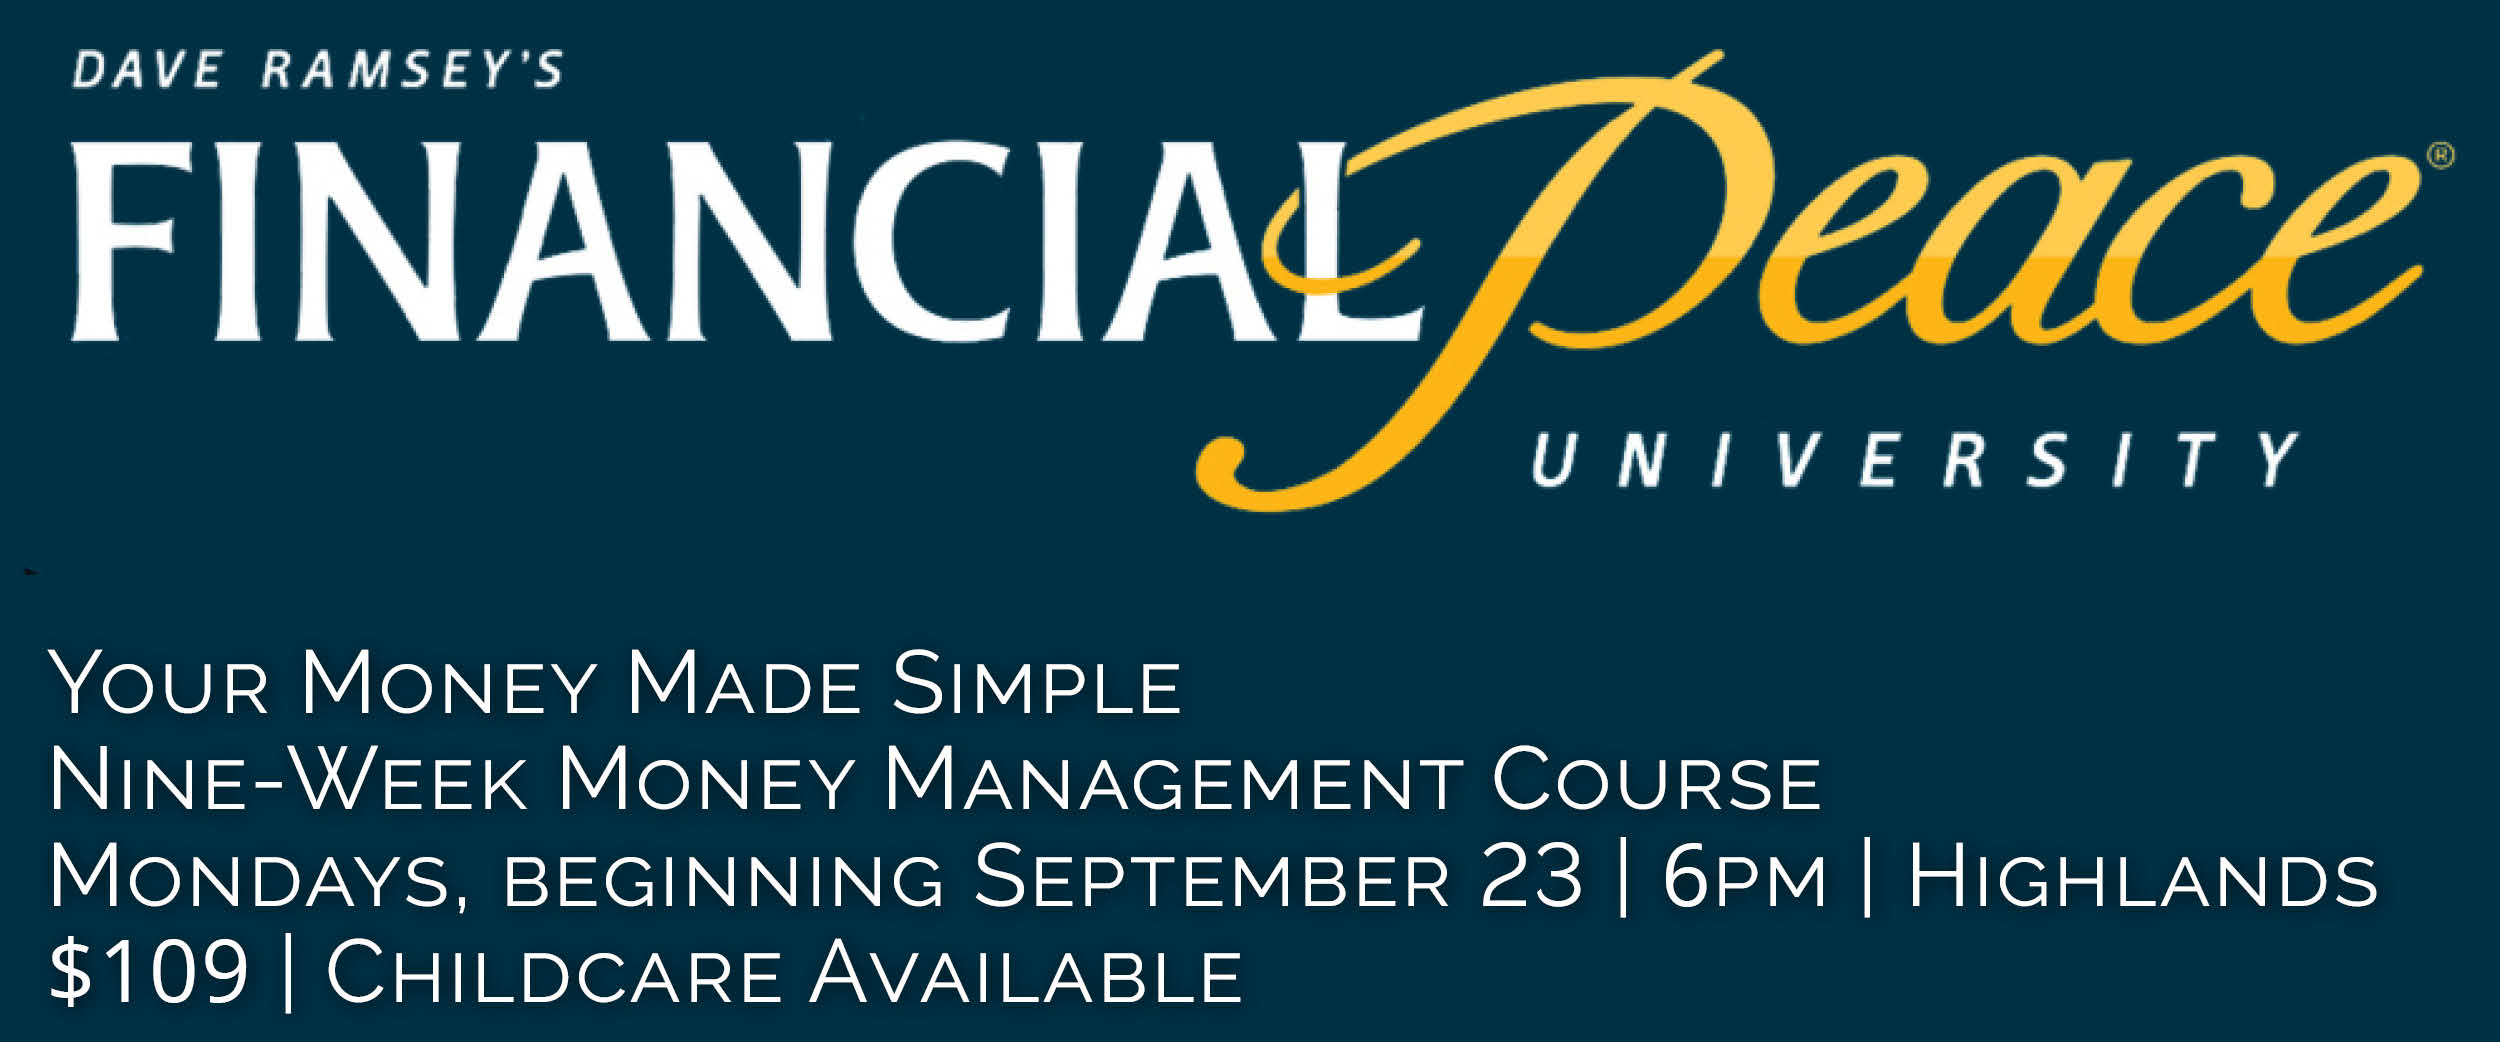 Financial Peace University at Bethel